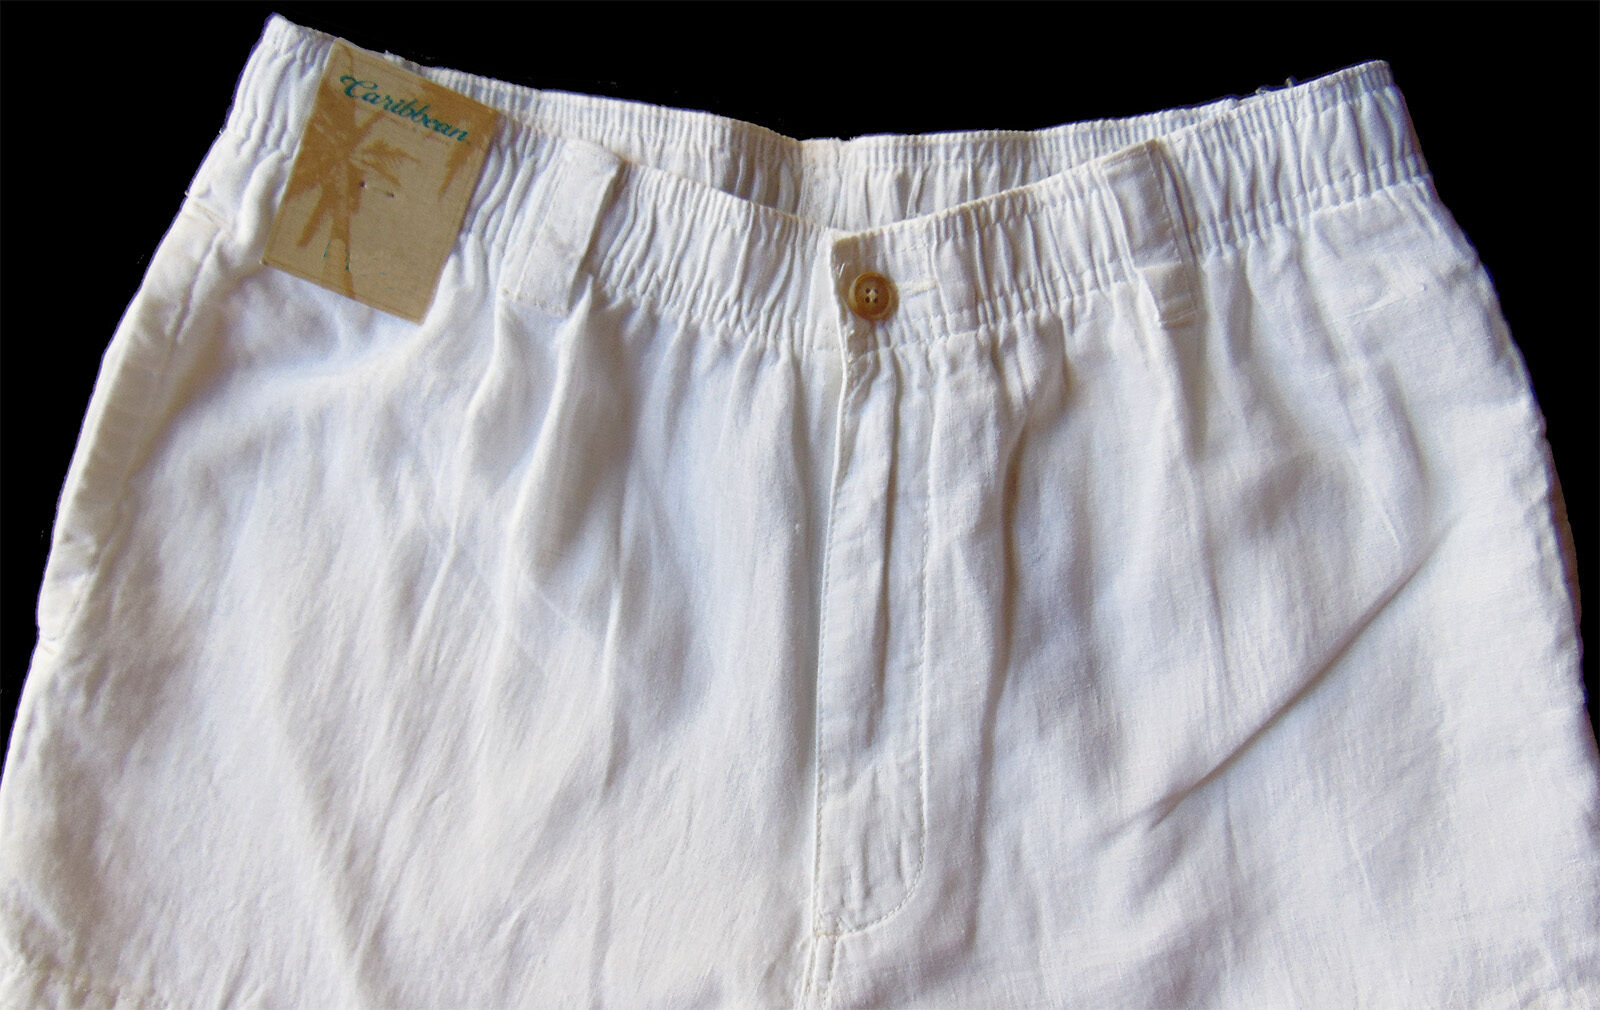 Men's CARIBBEAN White Pure LINEN Drawstring Pants 40x32 NEW NWT Cargo AWESOME